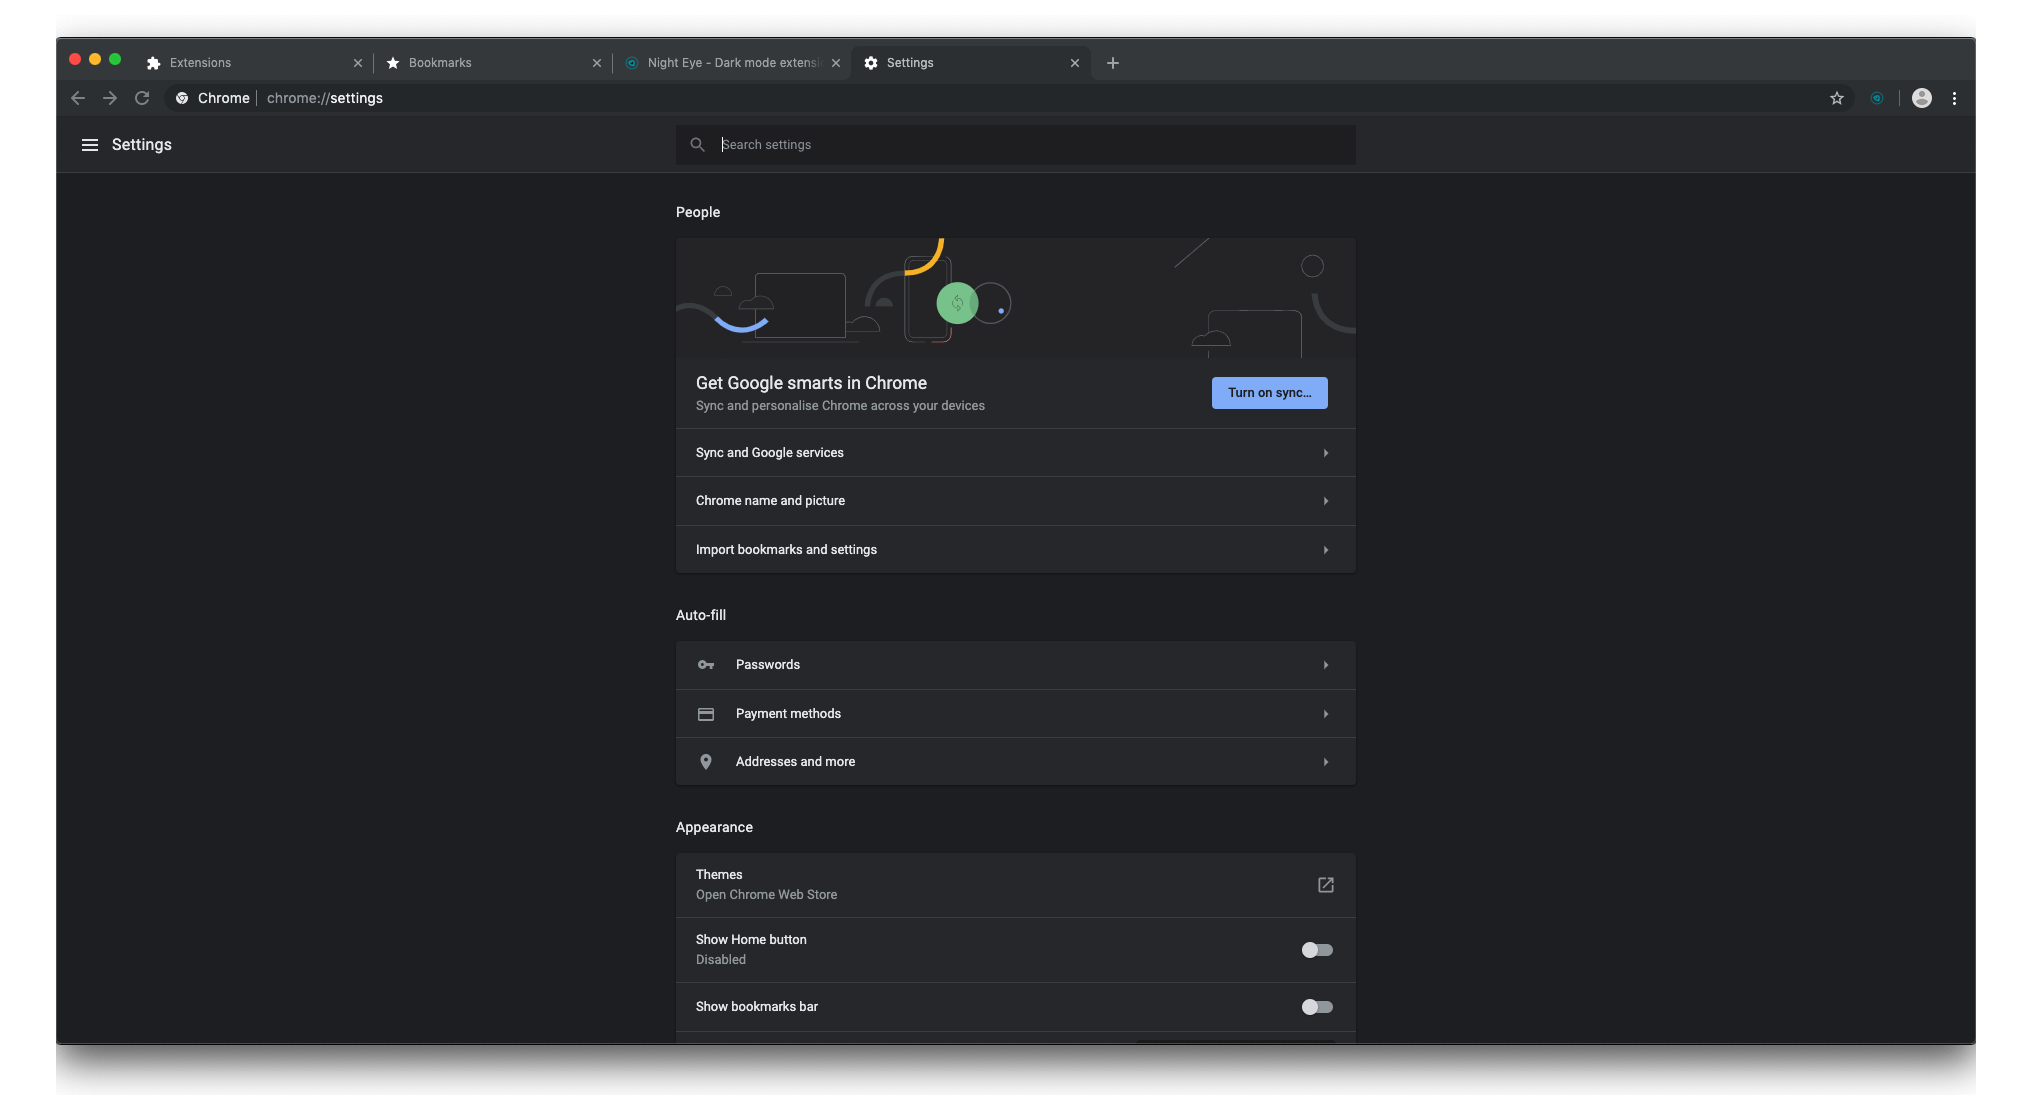 Google-Chrome-Canary-dark-mode-preview-settings